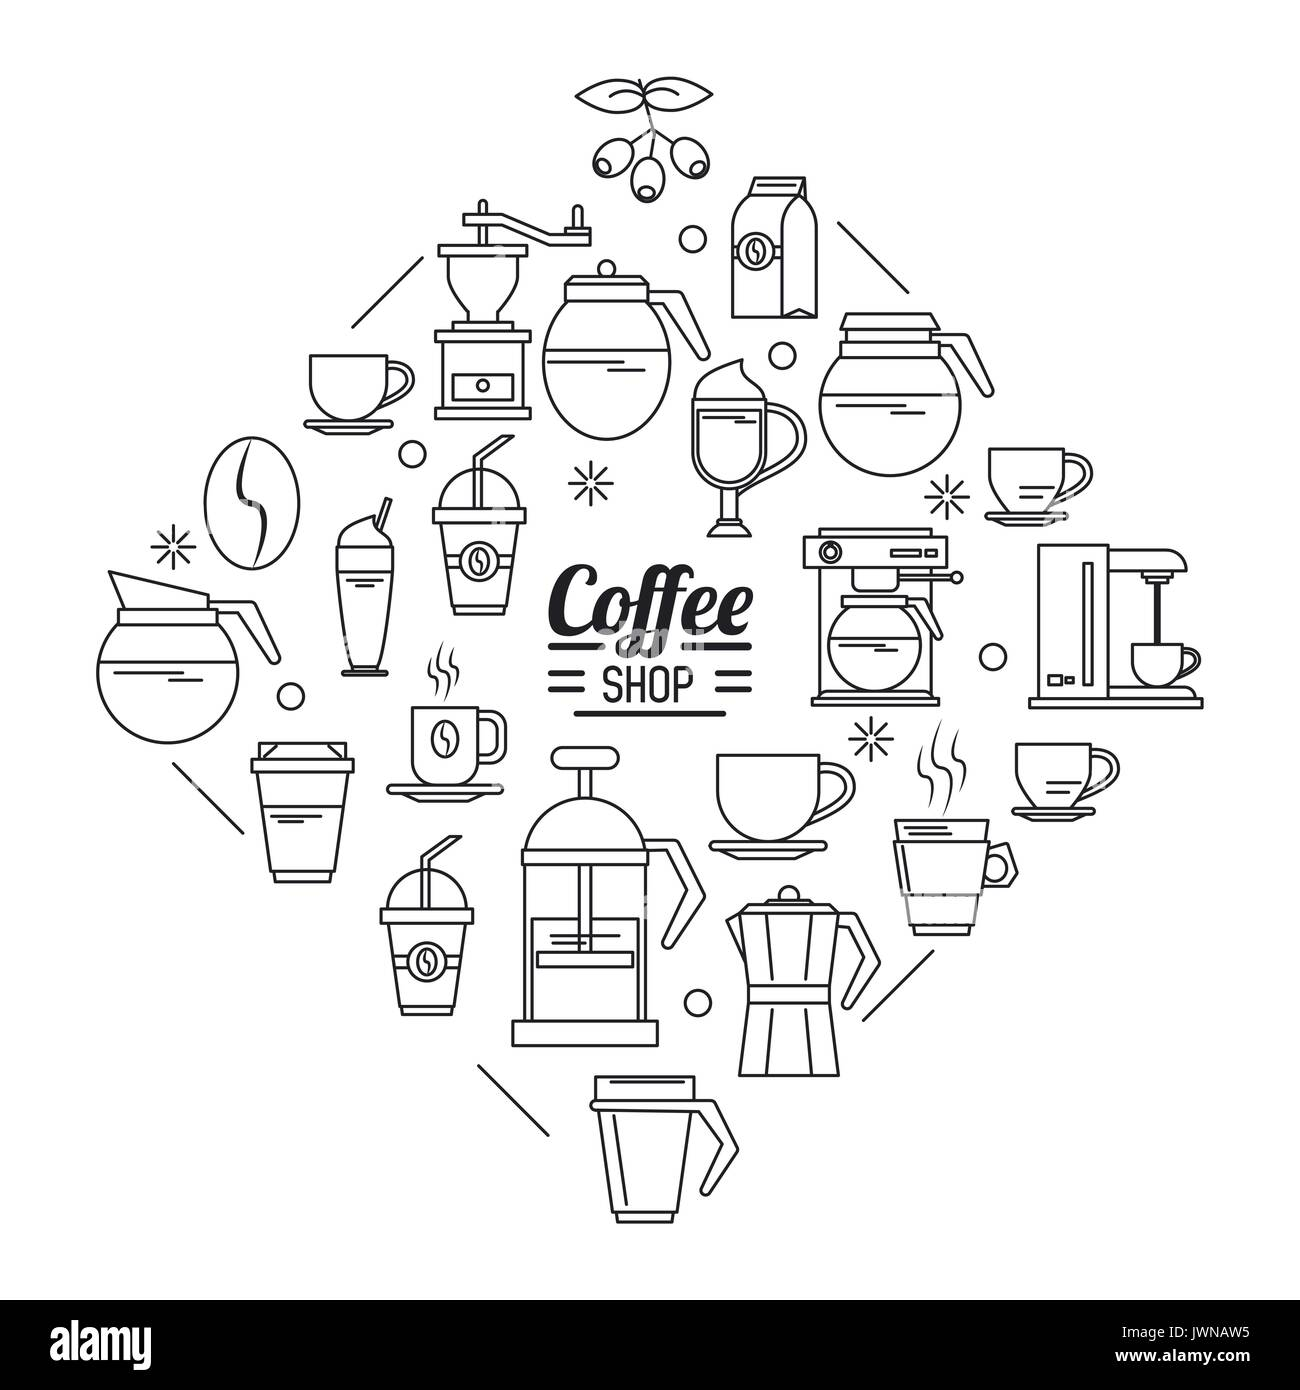 monochrome poster of coffee shop with several icons related to coffee - Stock Image